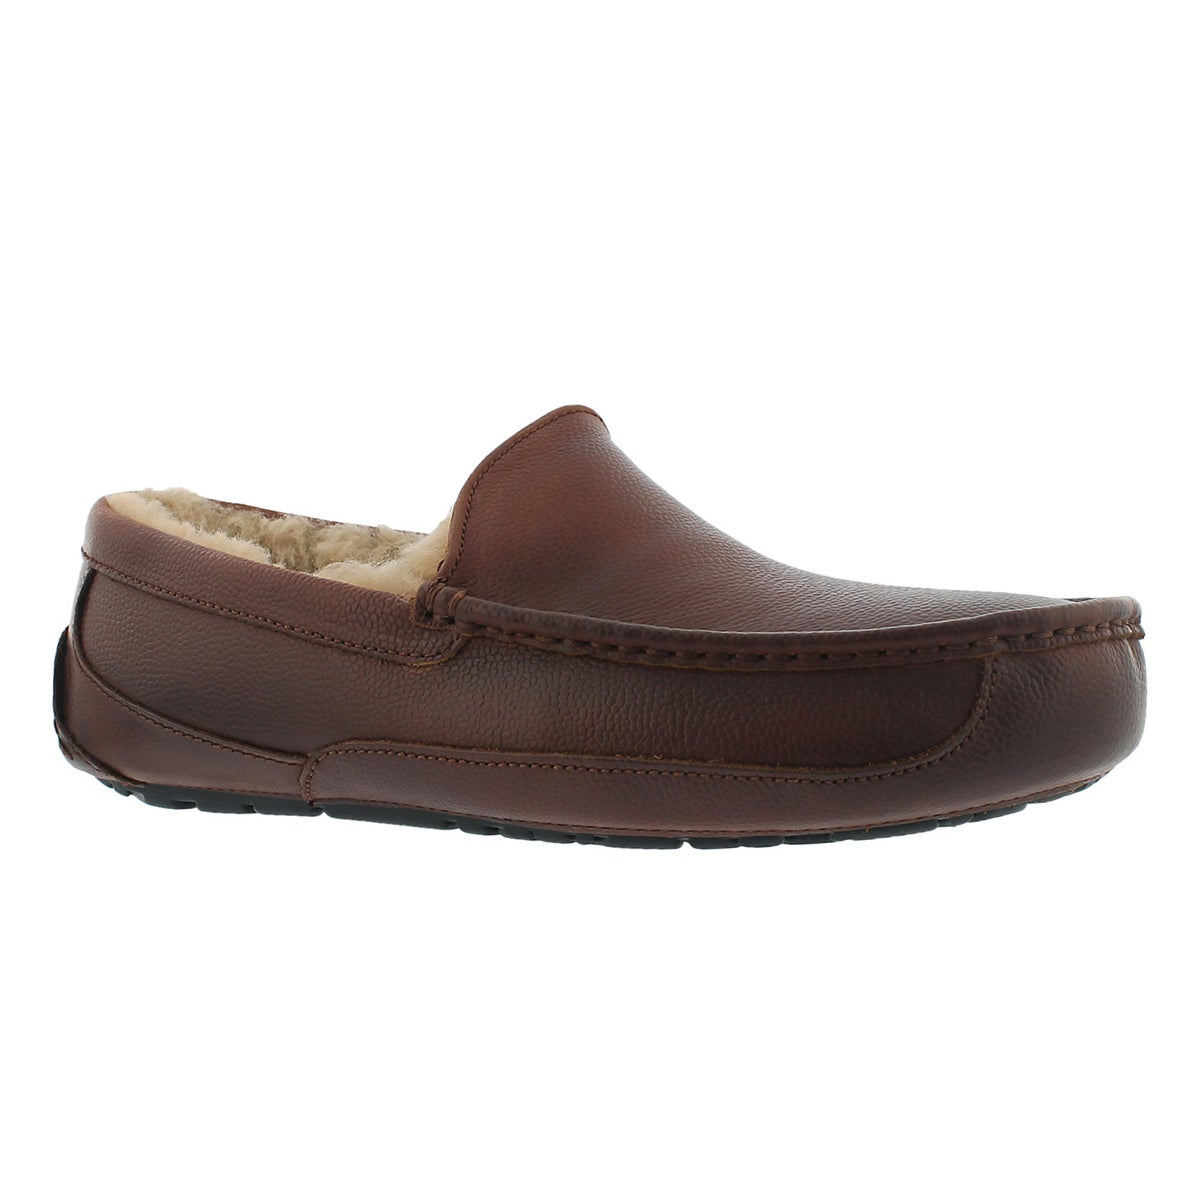 Men's ASCOT SCOTCH GRAIN cognac moccasins